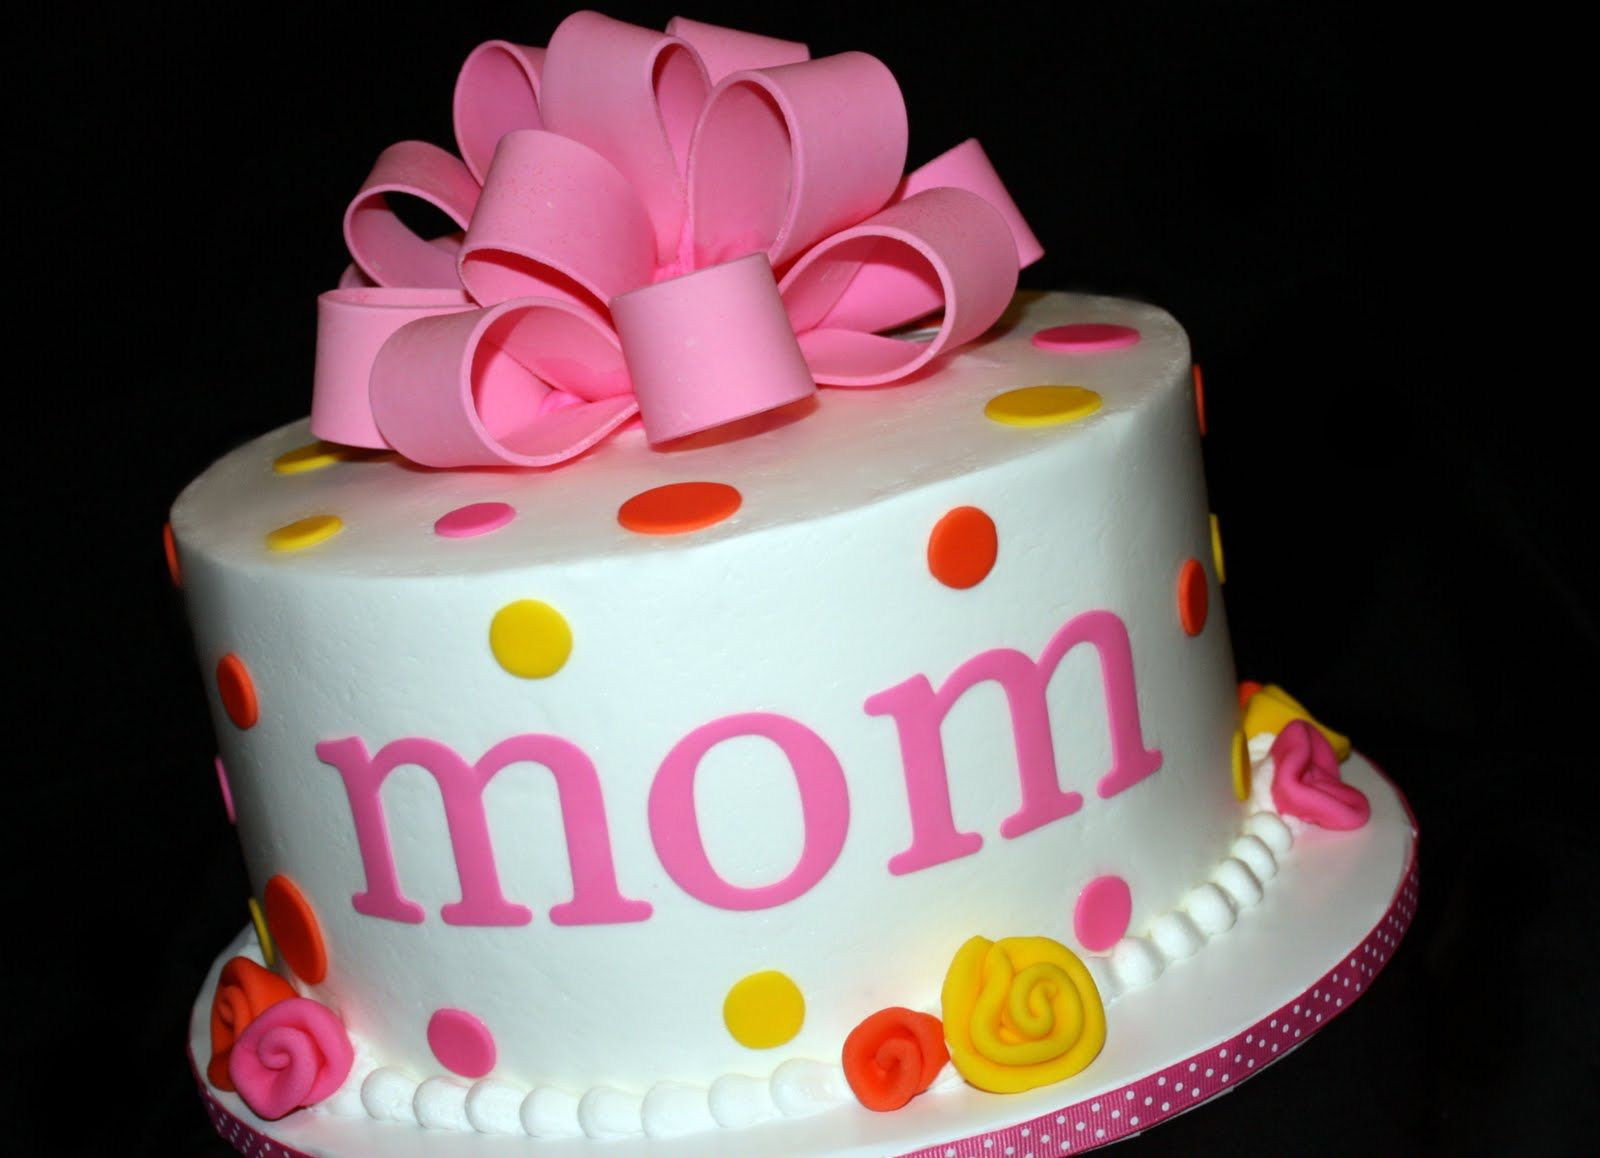 Best Cake Designs For Mother : fun cakes Mom Birthday Cake fun cakes Pinterest ...